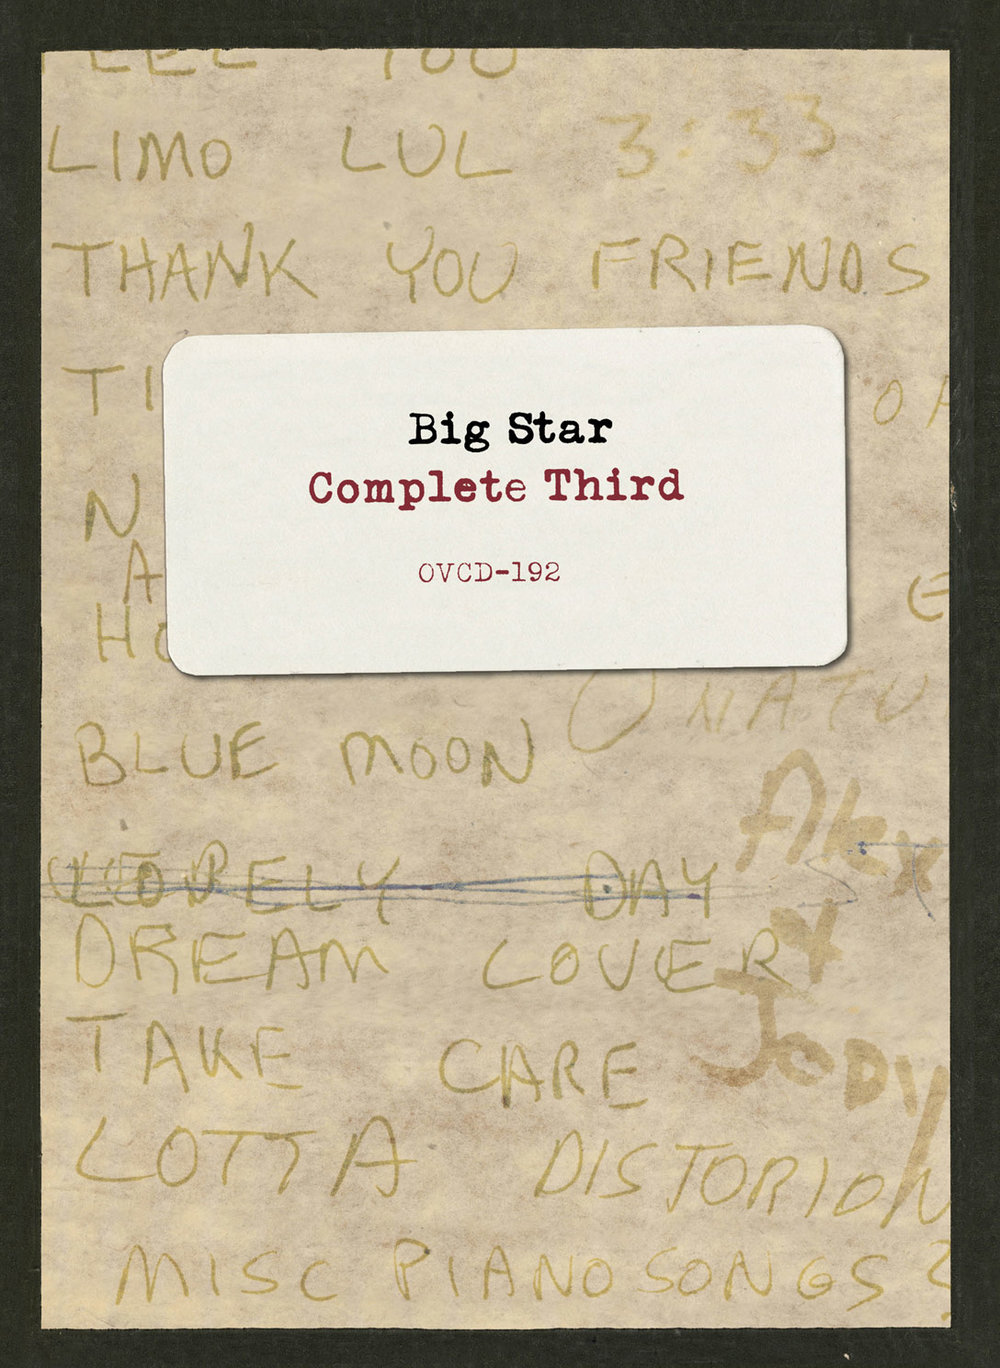 Big Star - Complete Third  Release Date: October 14, 2016 Label: Omnivore Recordings  SERVICE: Mastering, Restoration NUMBER OF DISCS: 3 GENRE: Rock FORMAT: CD, LP